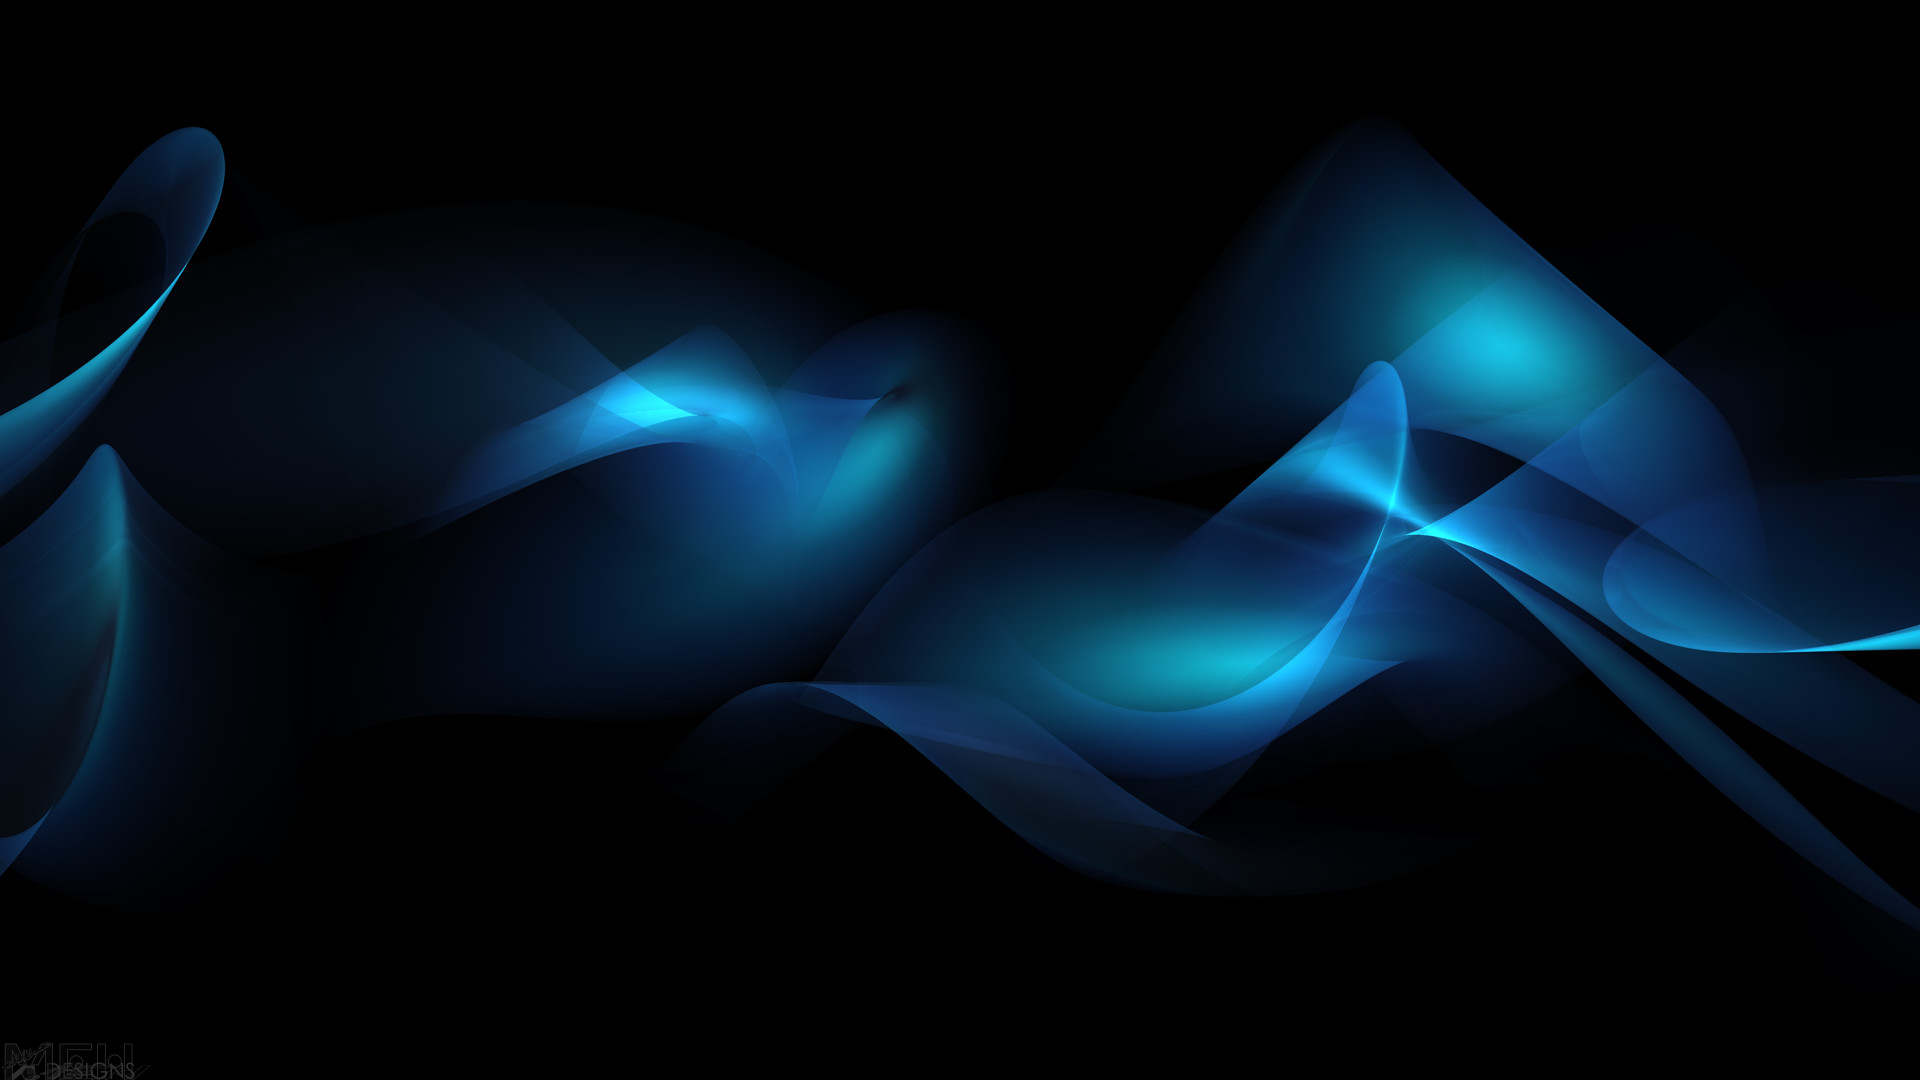 Abstract Blue Wallpaper Abstract, Blue